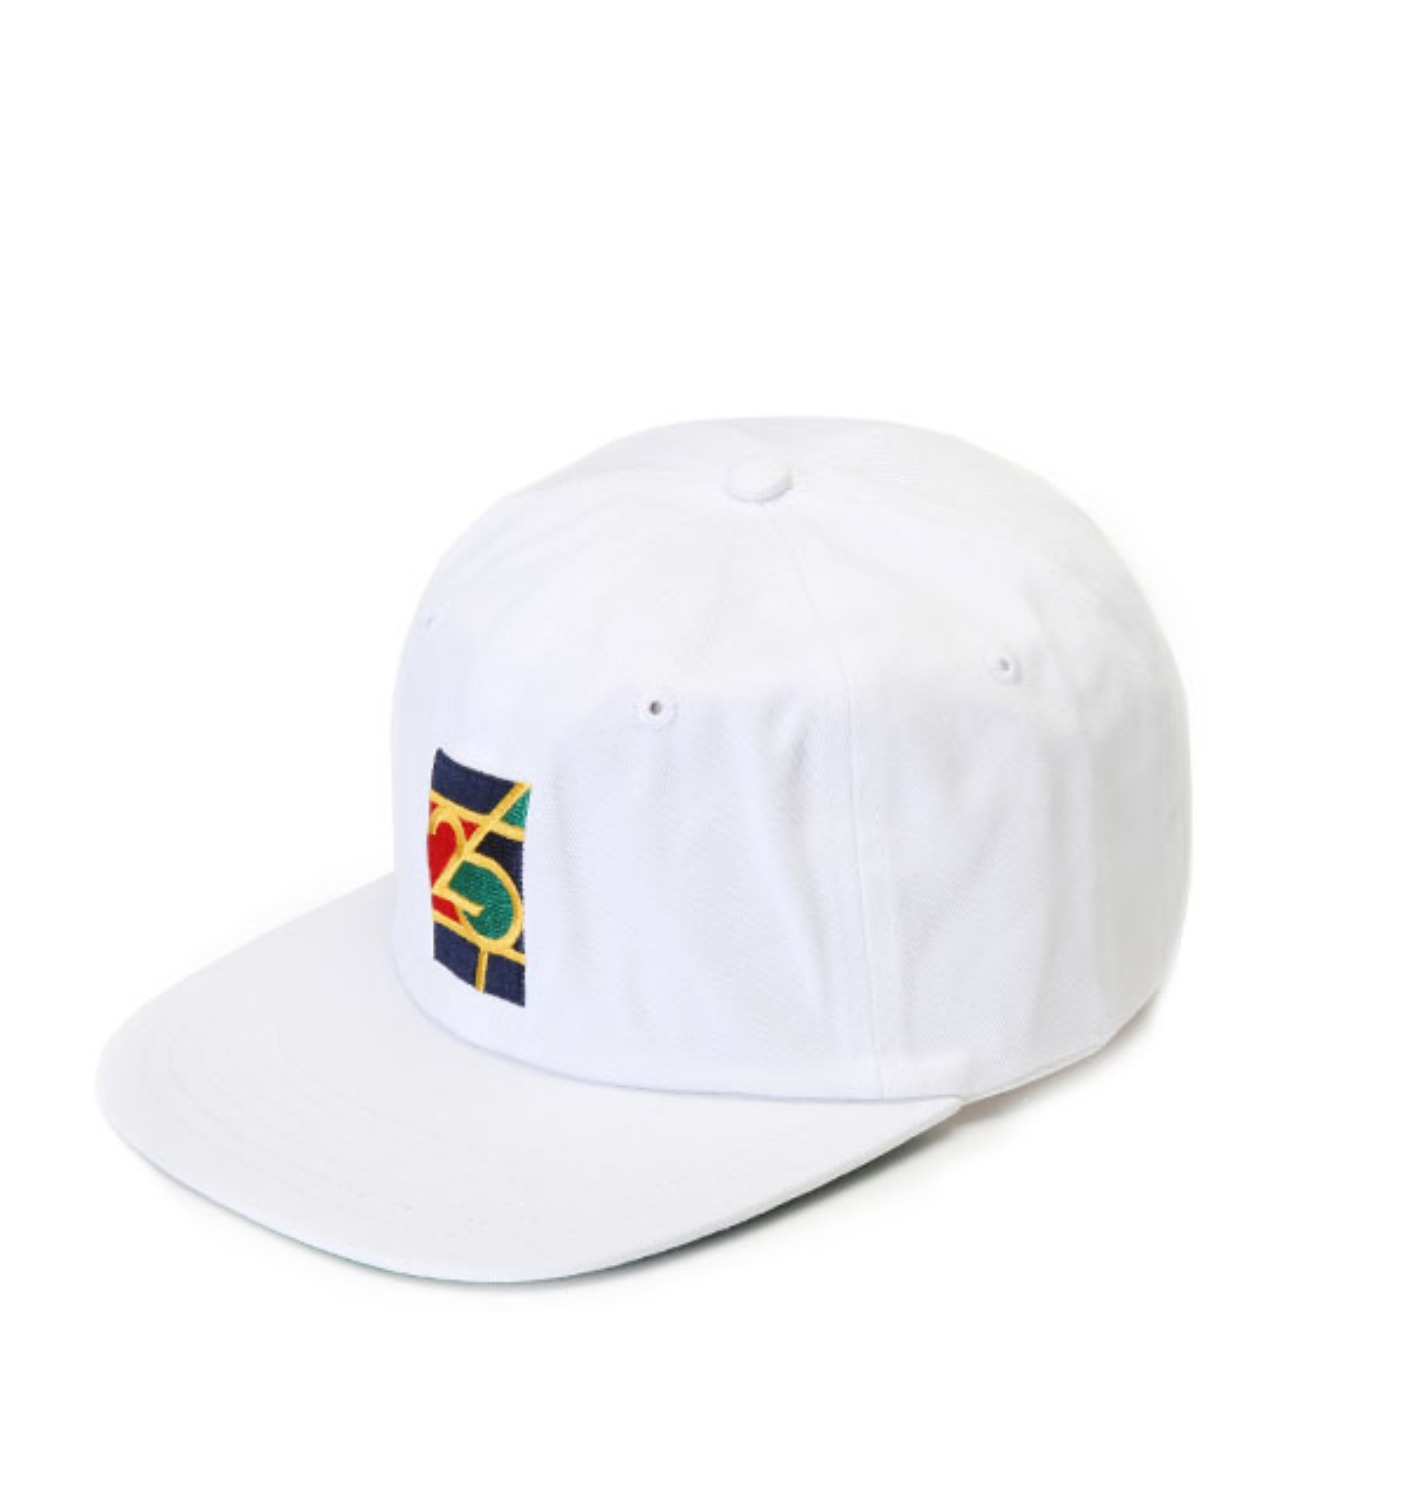 NEIGHBORHOOD ASSOCIATION HAT WHITE